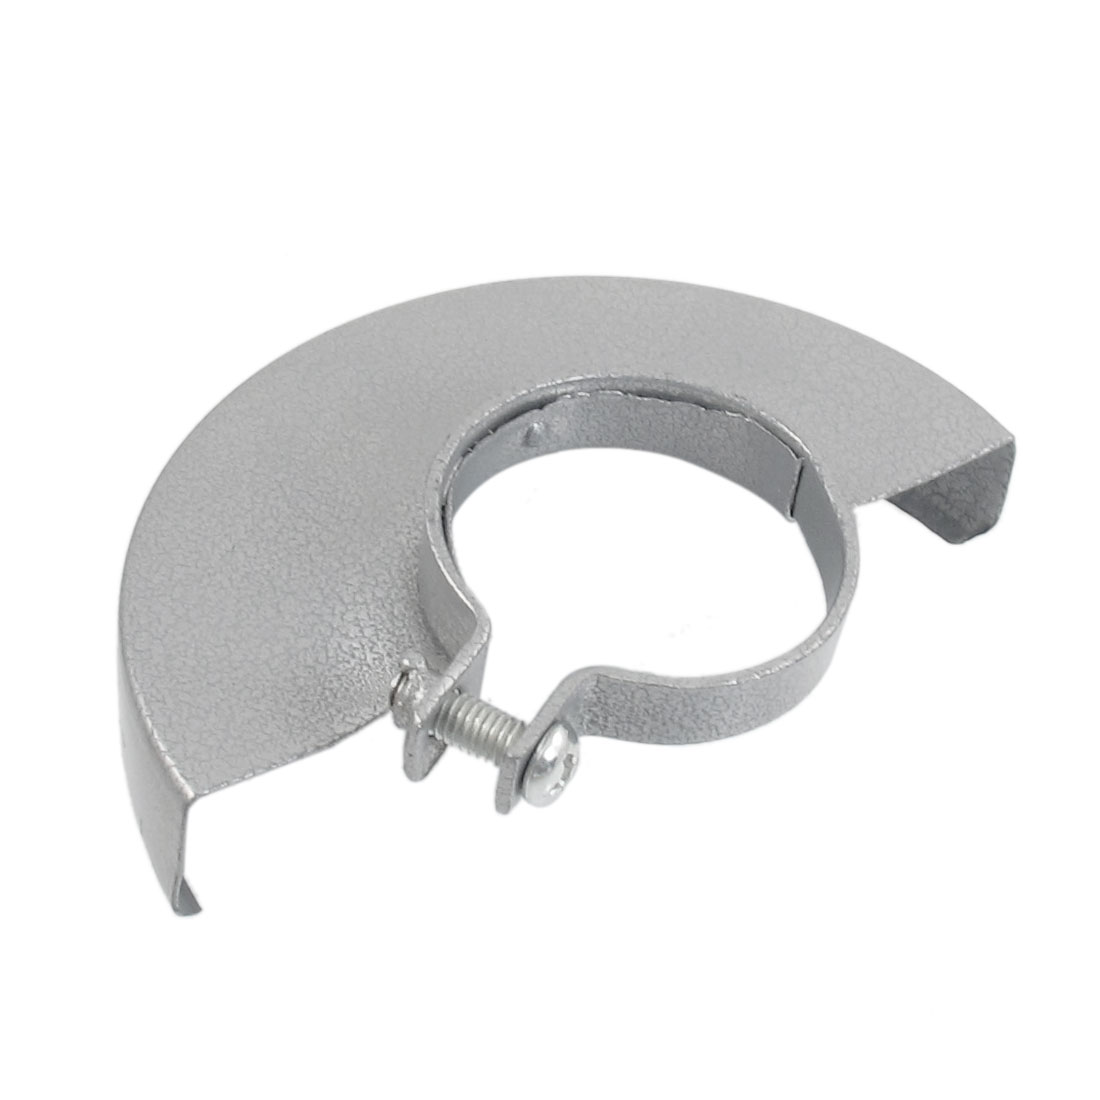 Gray Metal Wheel Guard Protector Cover for Bosch GWS 100 Angle Grinder